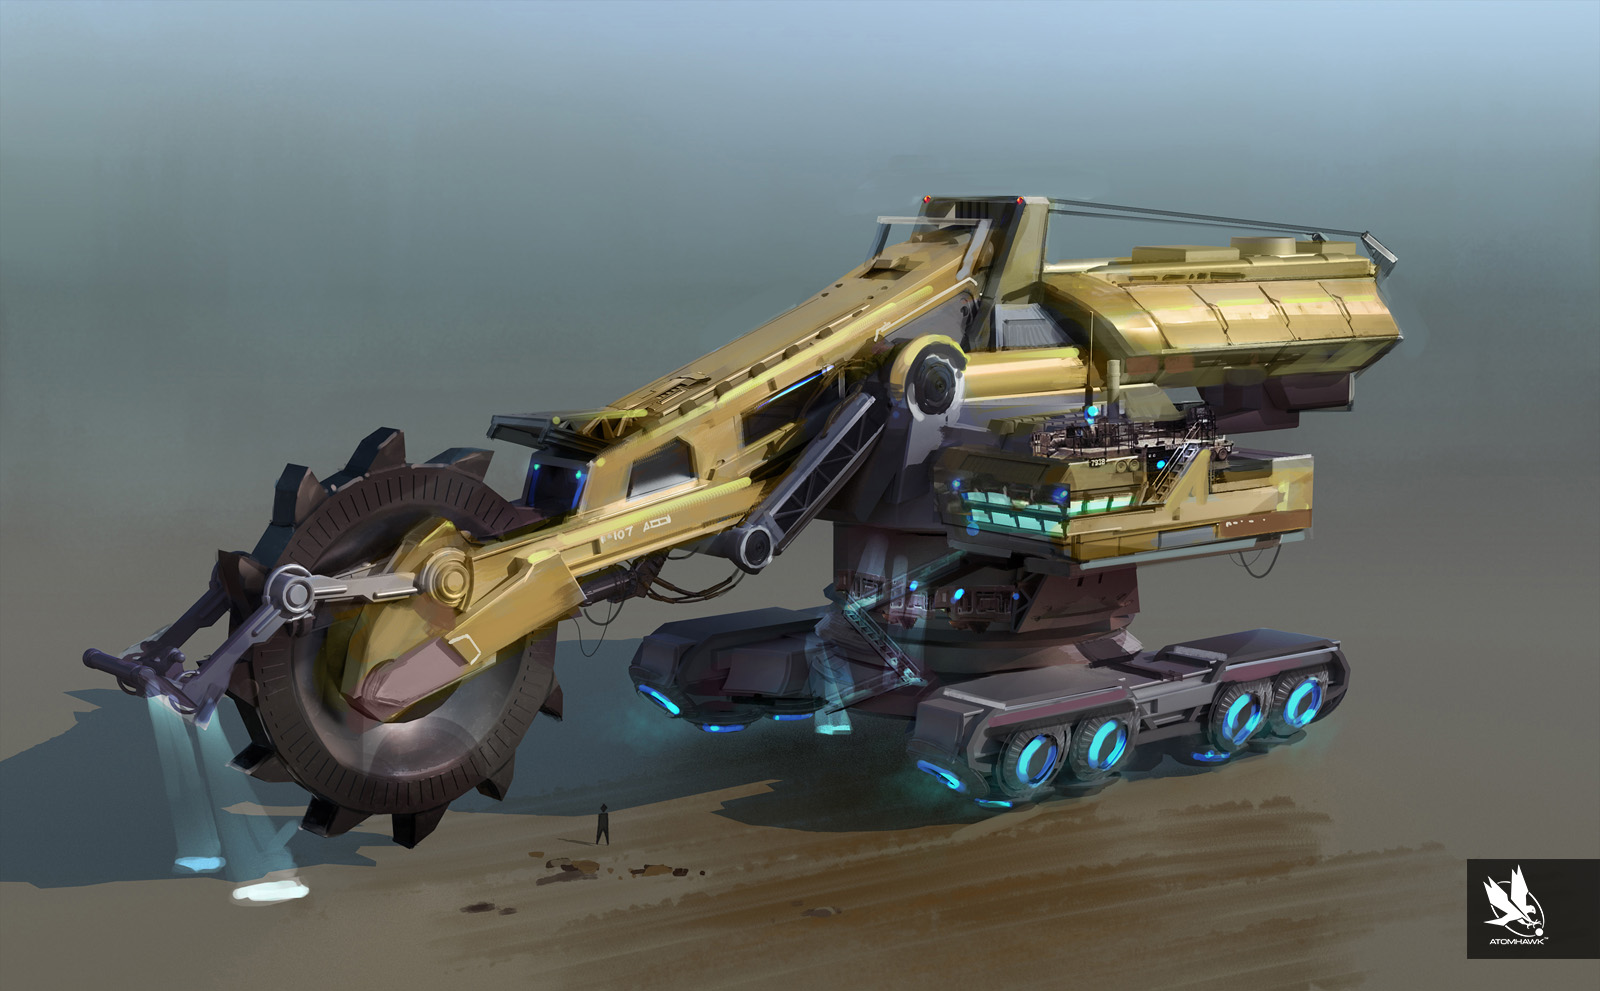 Atomhawk's Massive Mining Machine Breakout  Designs for Housemarque and Sony's Matterfall